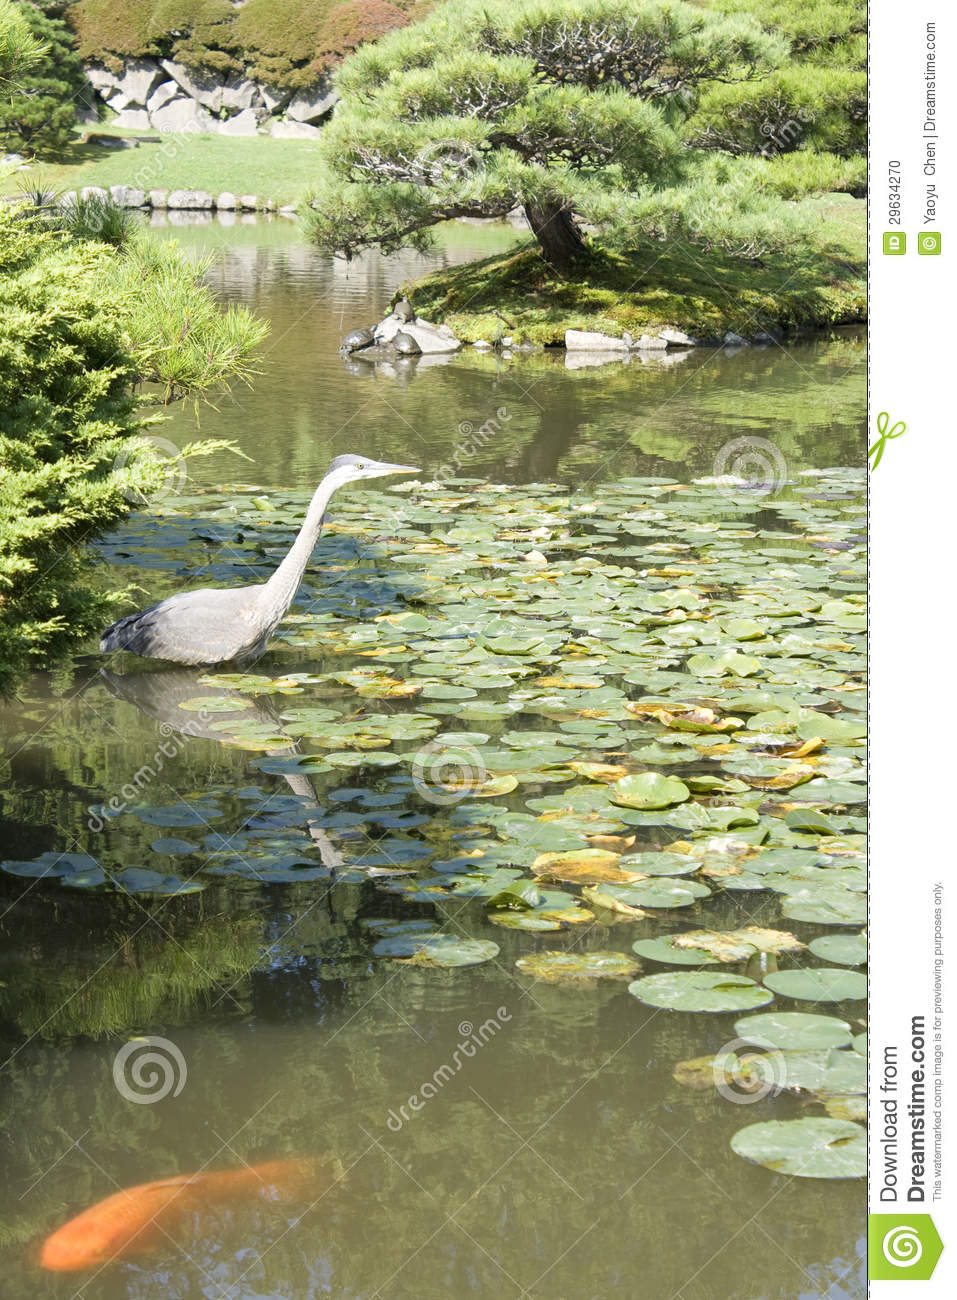 Crane and fish in japanese garden stock photo image for Japanese garden fish